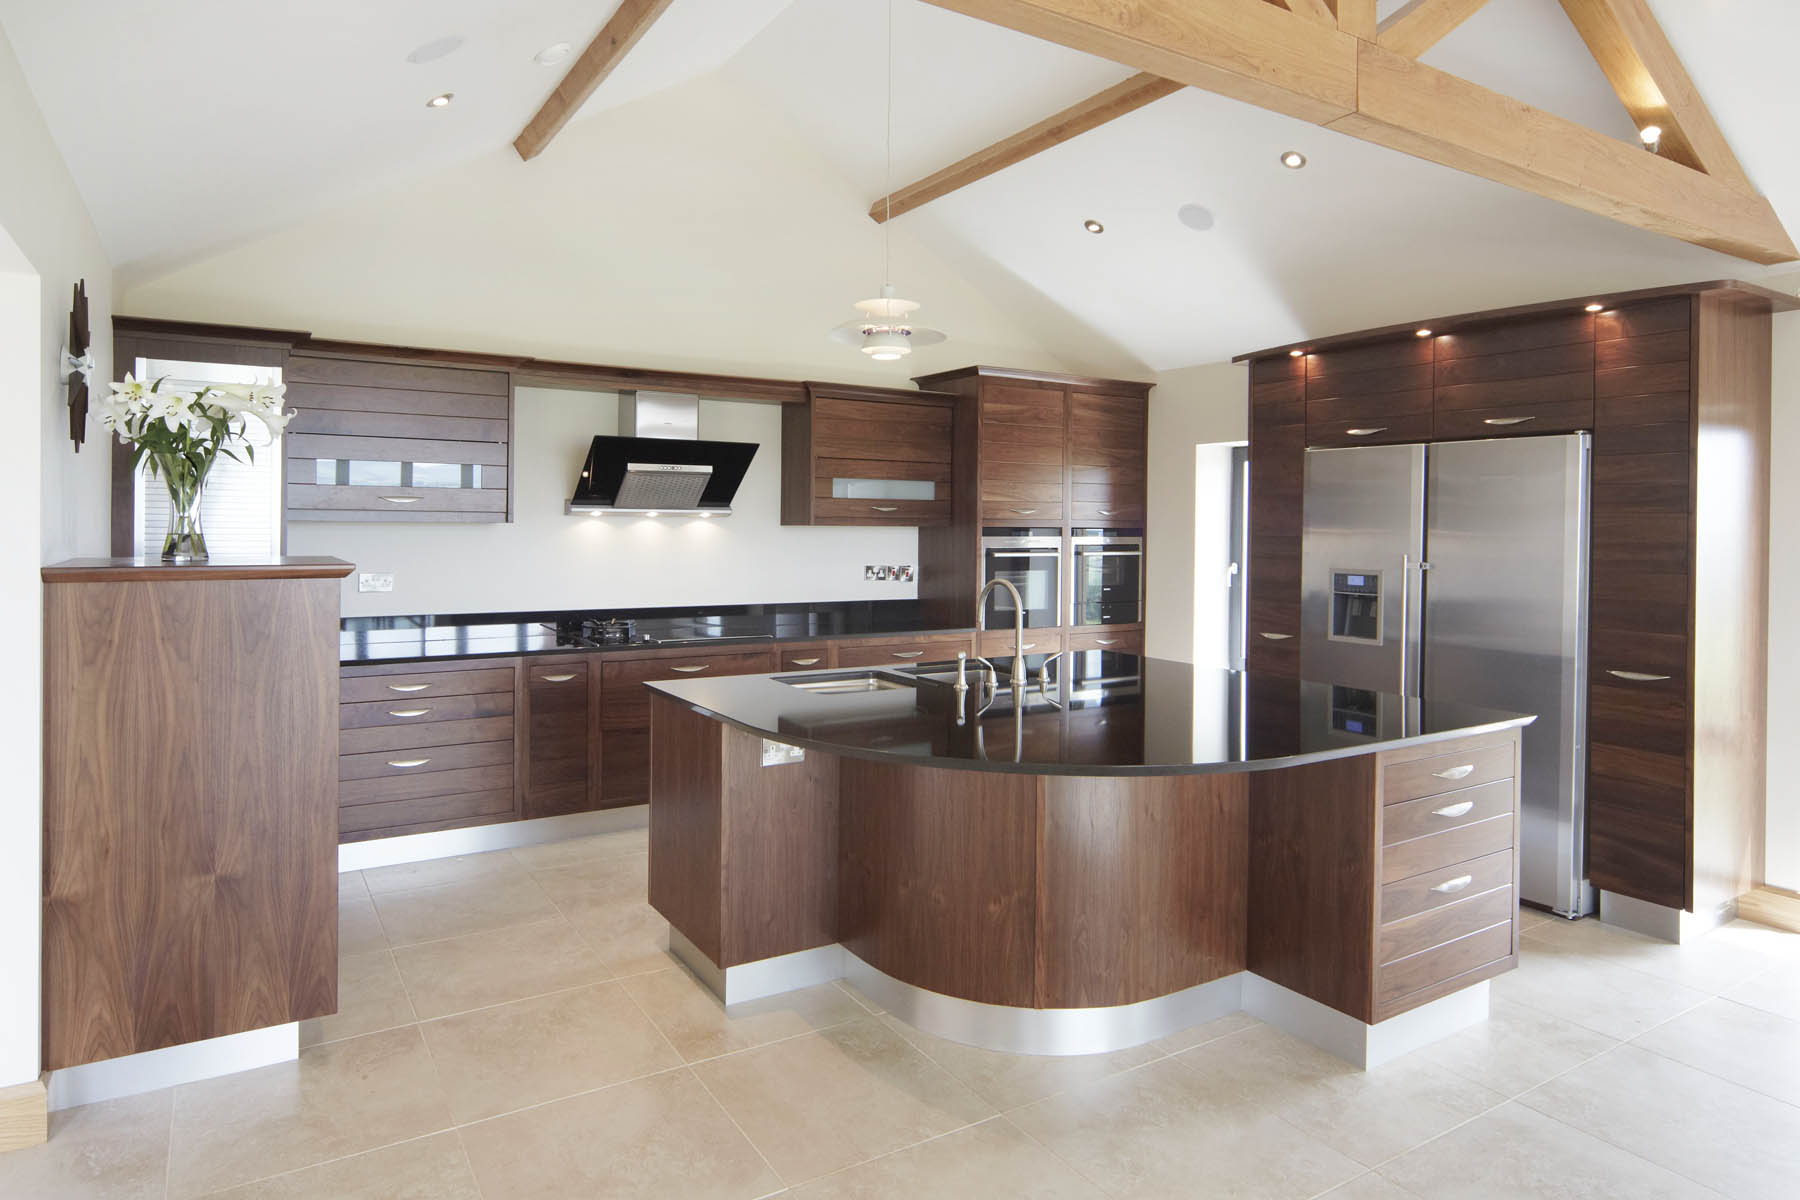 Kitchens california remodeling inc for Kitchen remodel design ideas